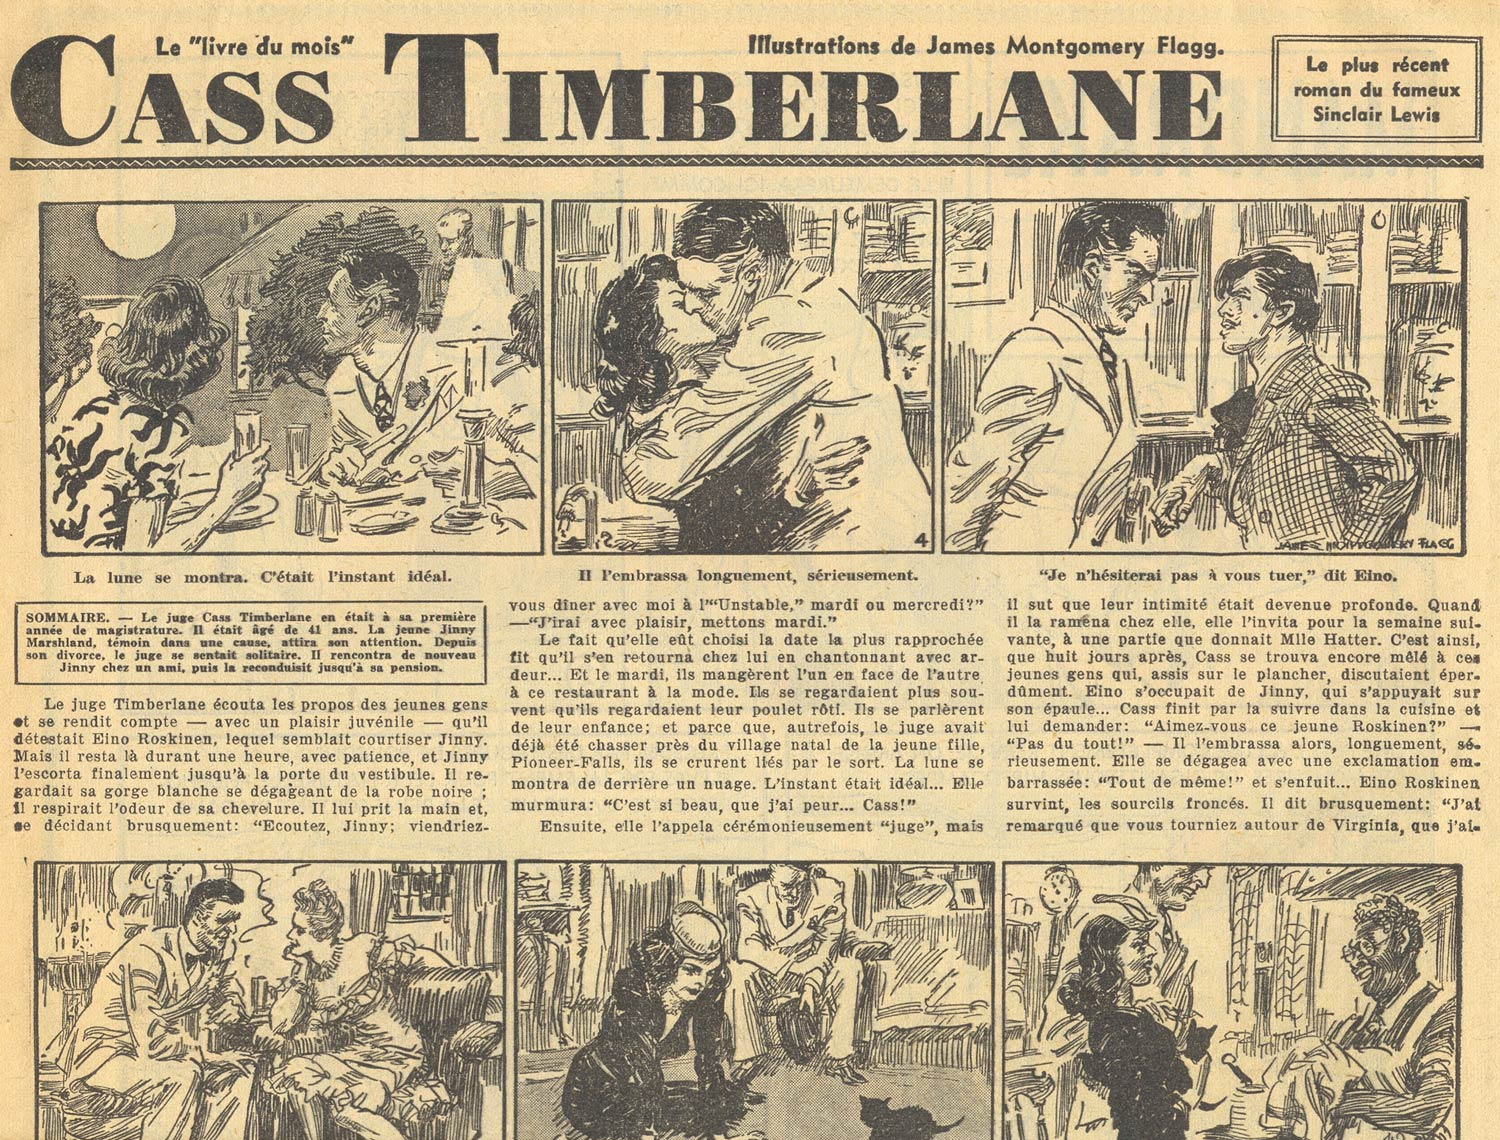 Cass Timberlane, novel by Sinclair Lewis (Petit Journal, 18/11/1945)